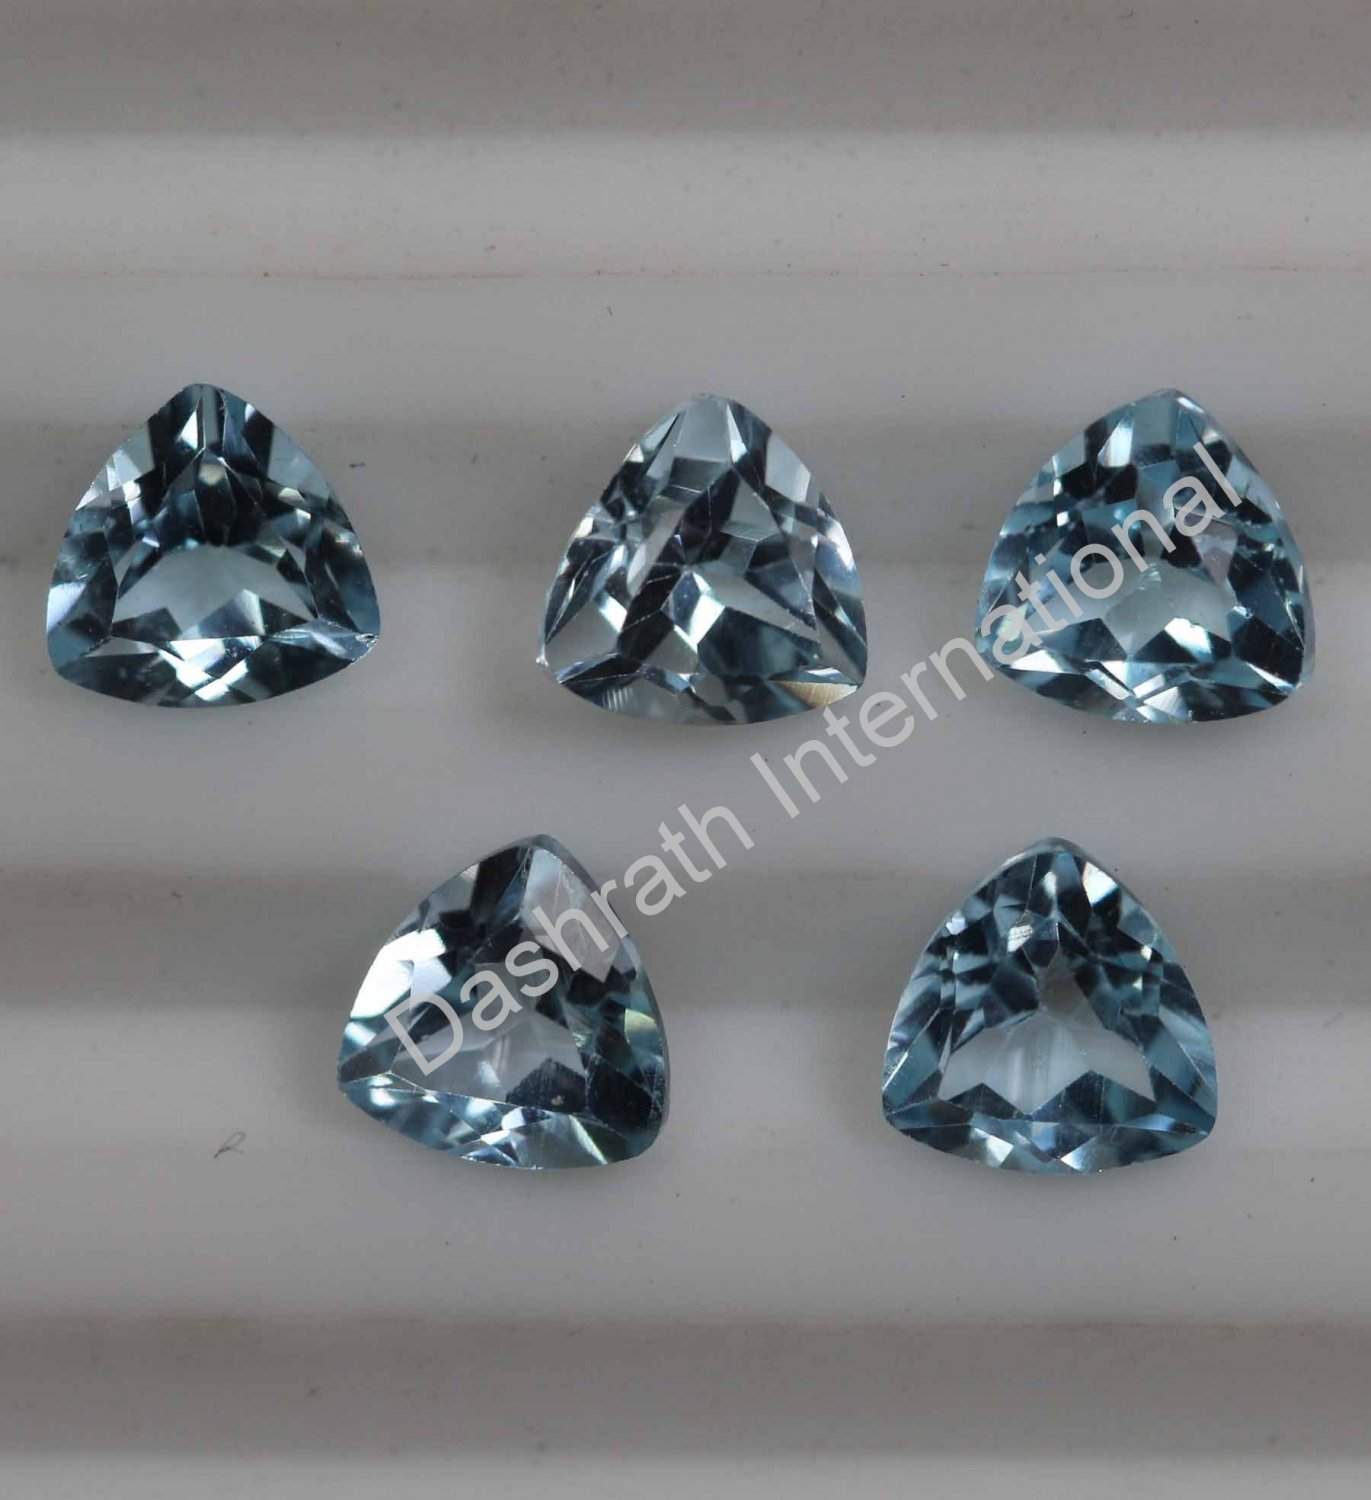 7mm Natural Sky Blue Topaz Faceted Cut Trillion 100 Pieces Lot Top Quality Loose Gemstone